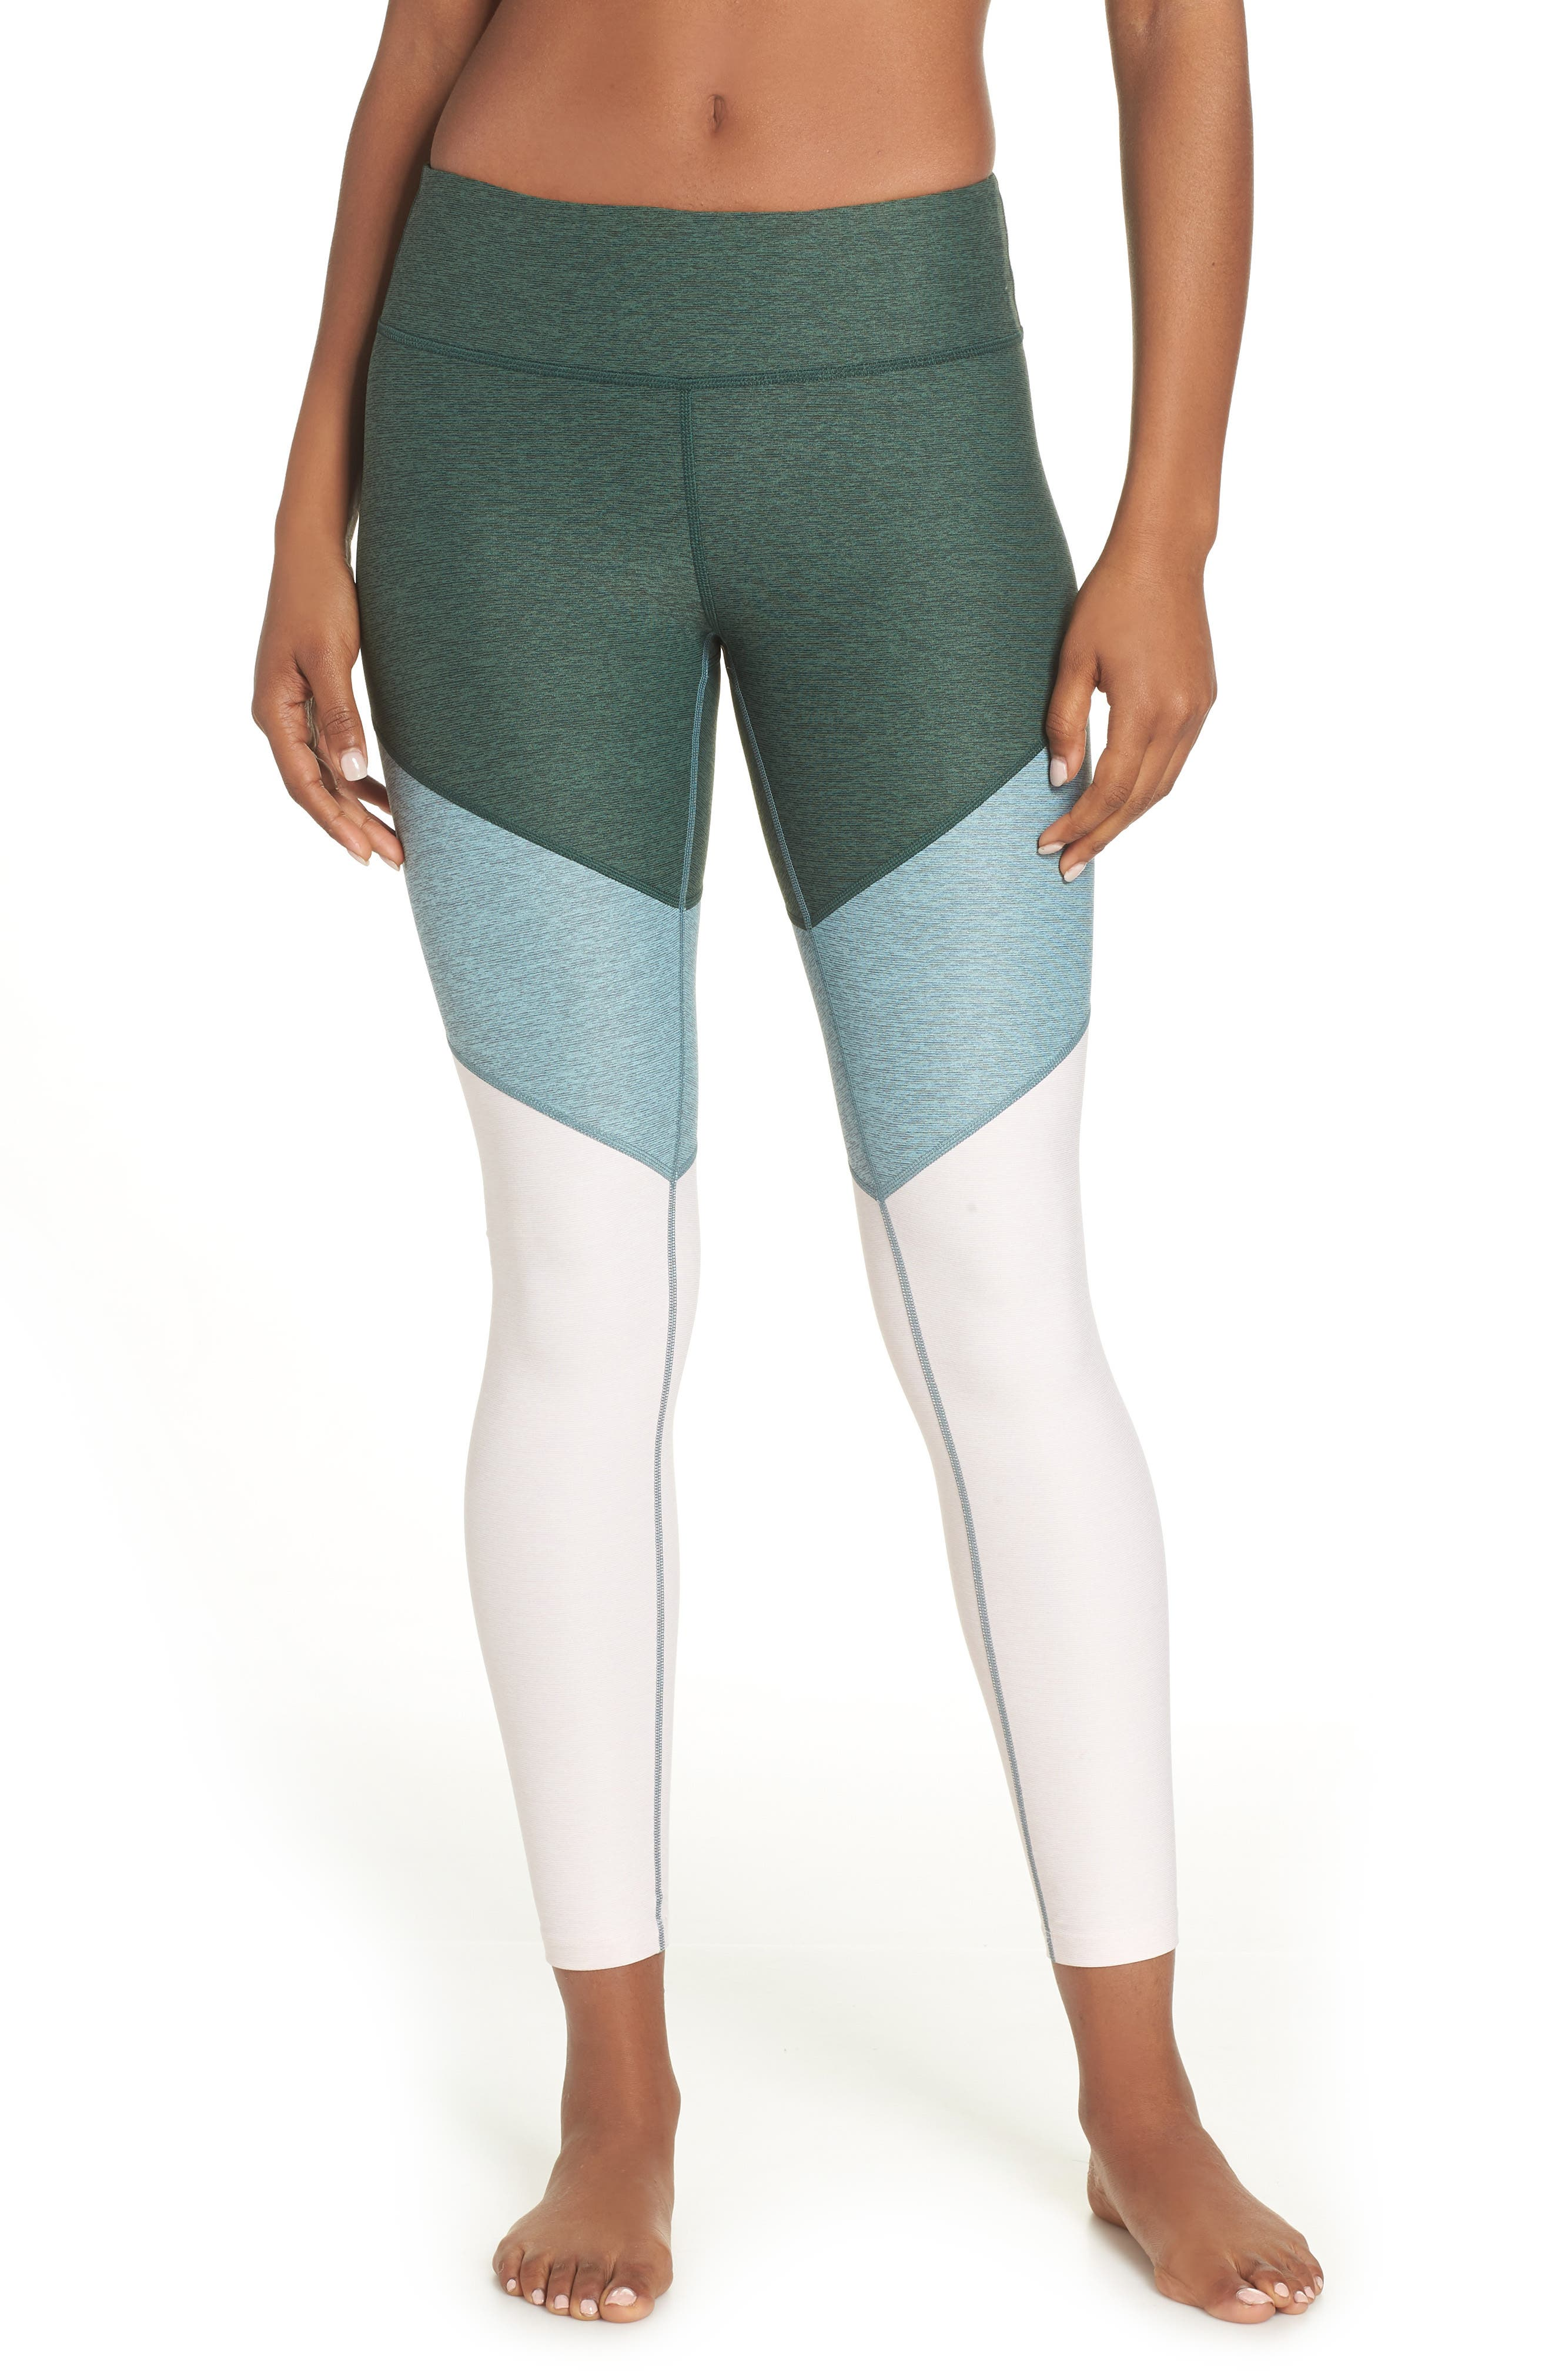 Outdoor Voices 7/8 Springs Leggings, Green